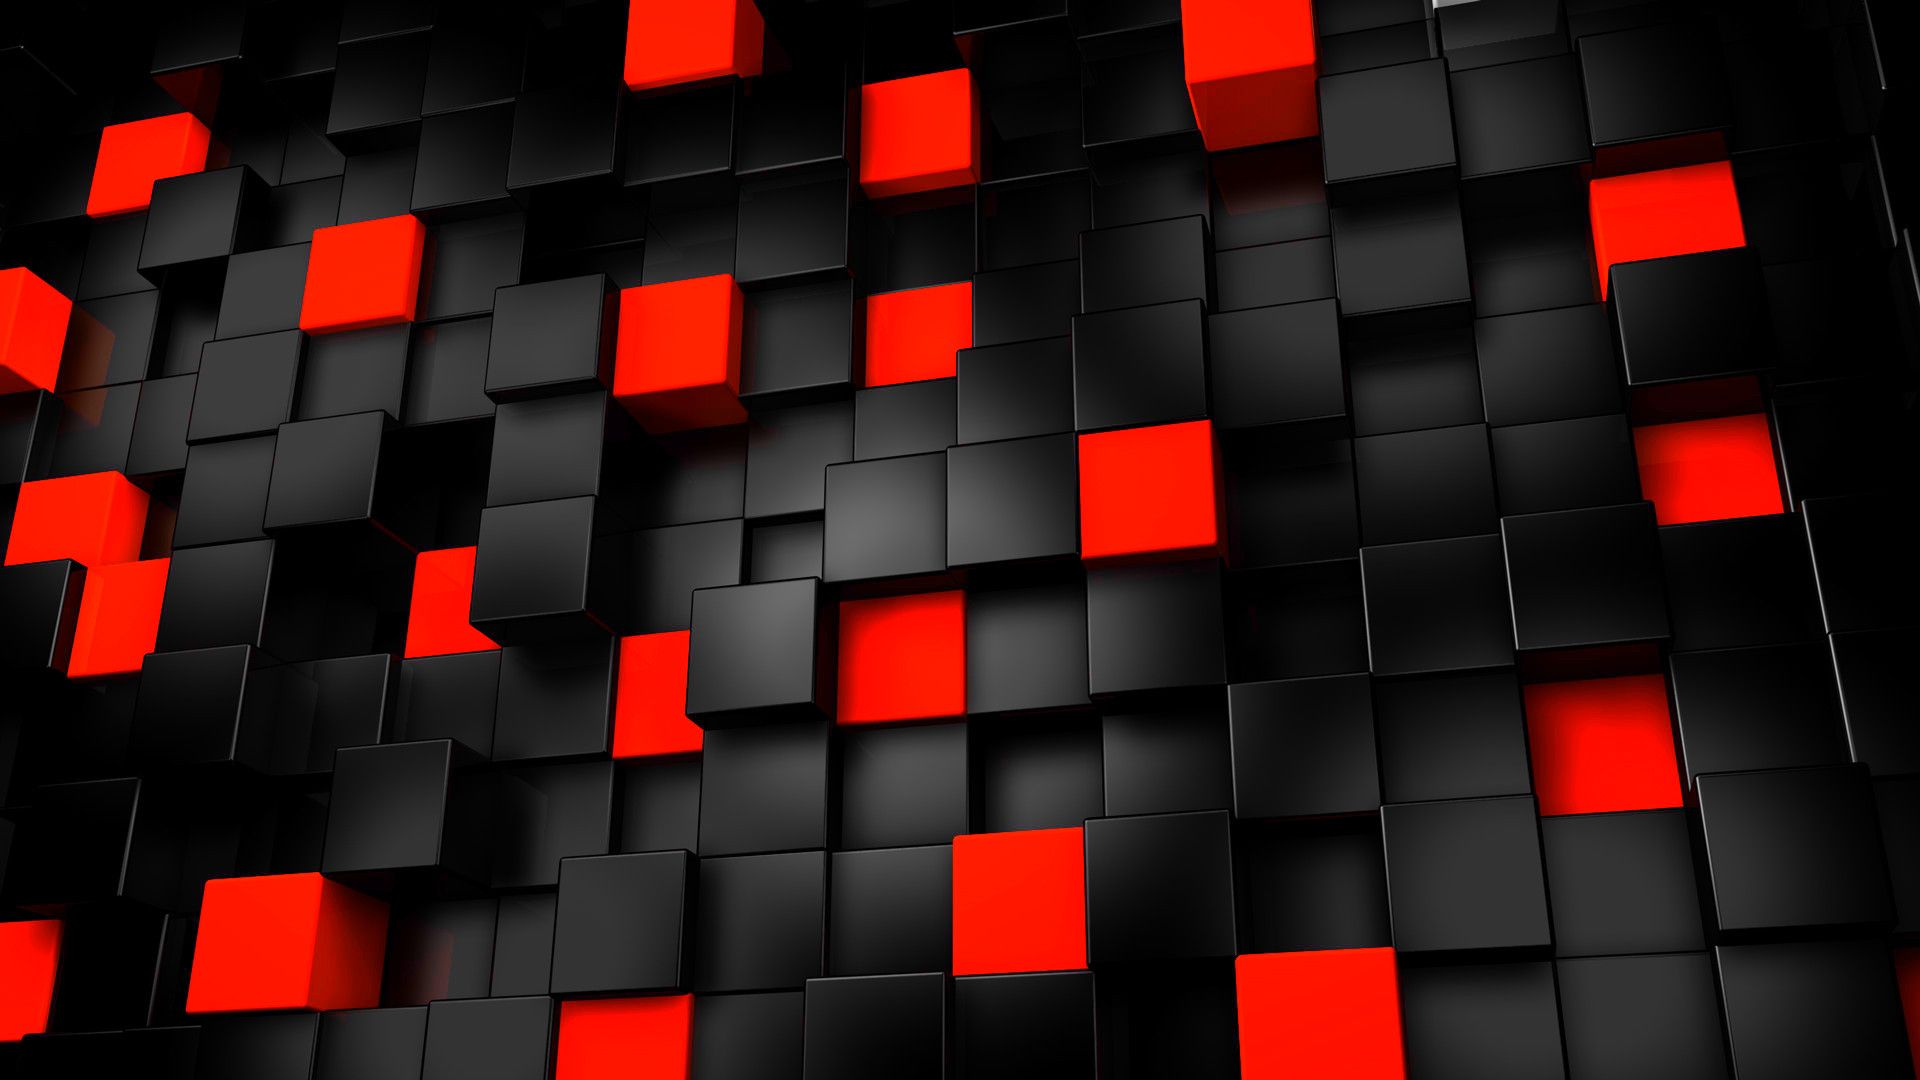 Wallpaper Hd 1080p Black And Red Bieb The Heartbreaker Black And Blue Wallpaper Cool Blue Wallpaper 3d Cube Wallpaper